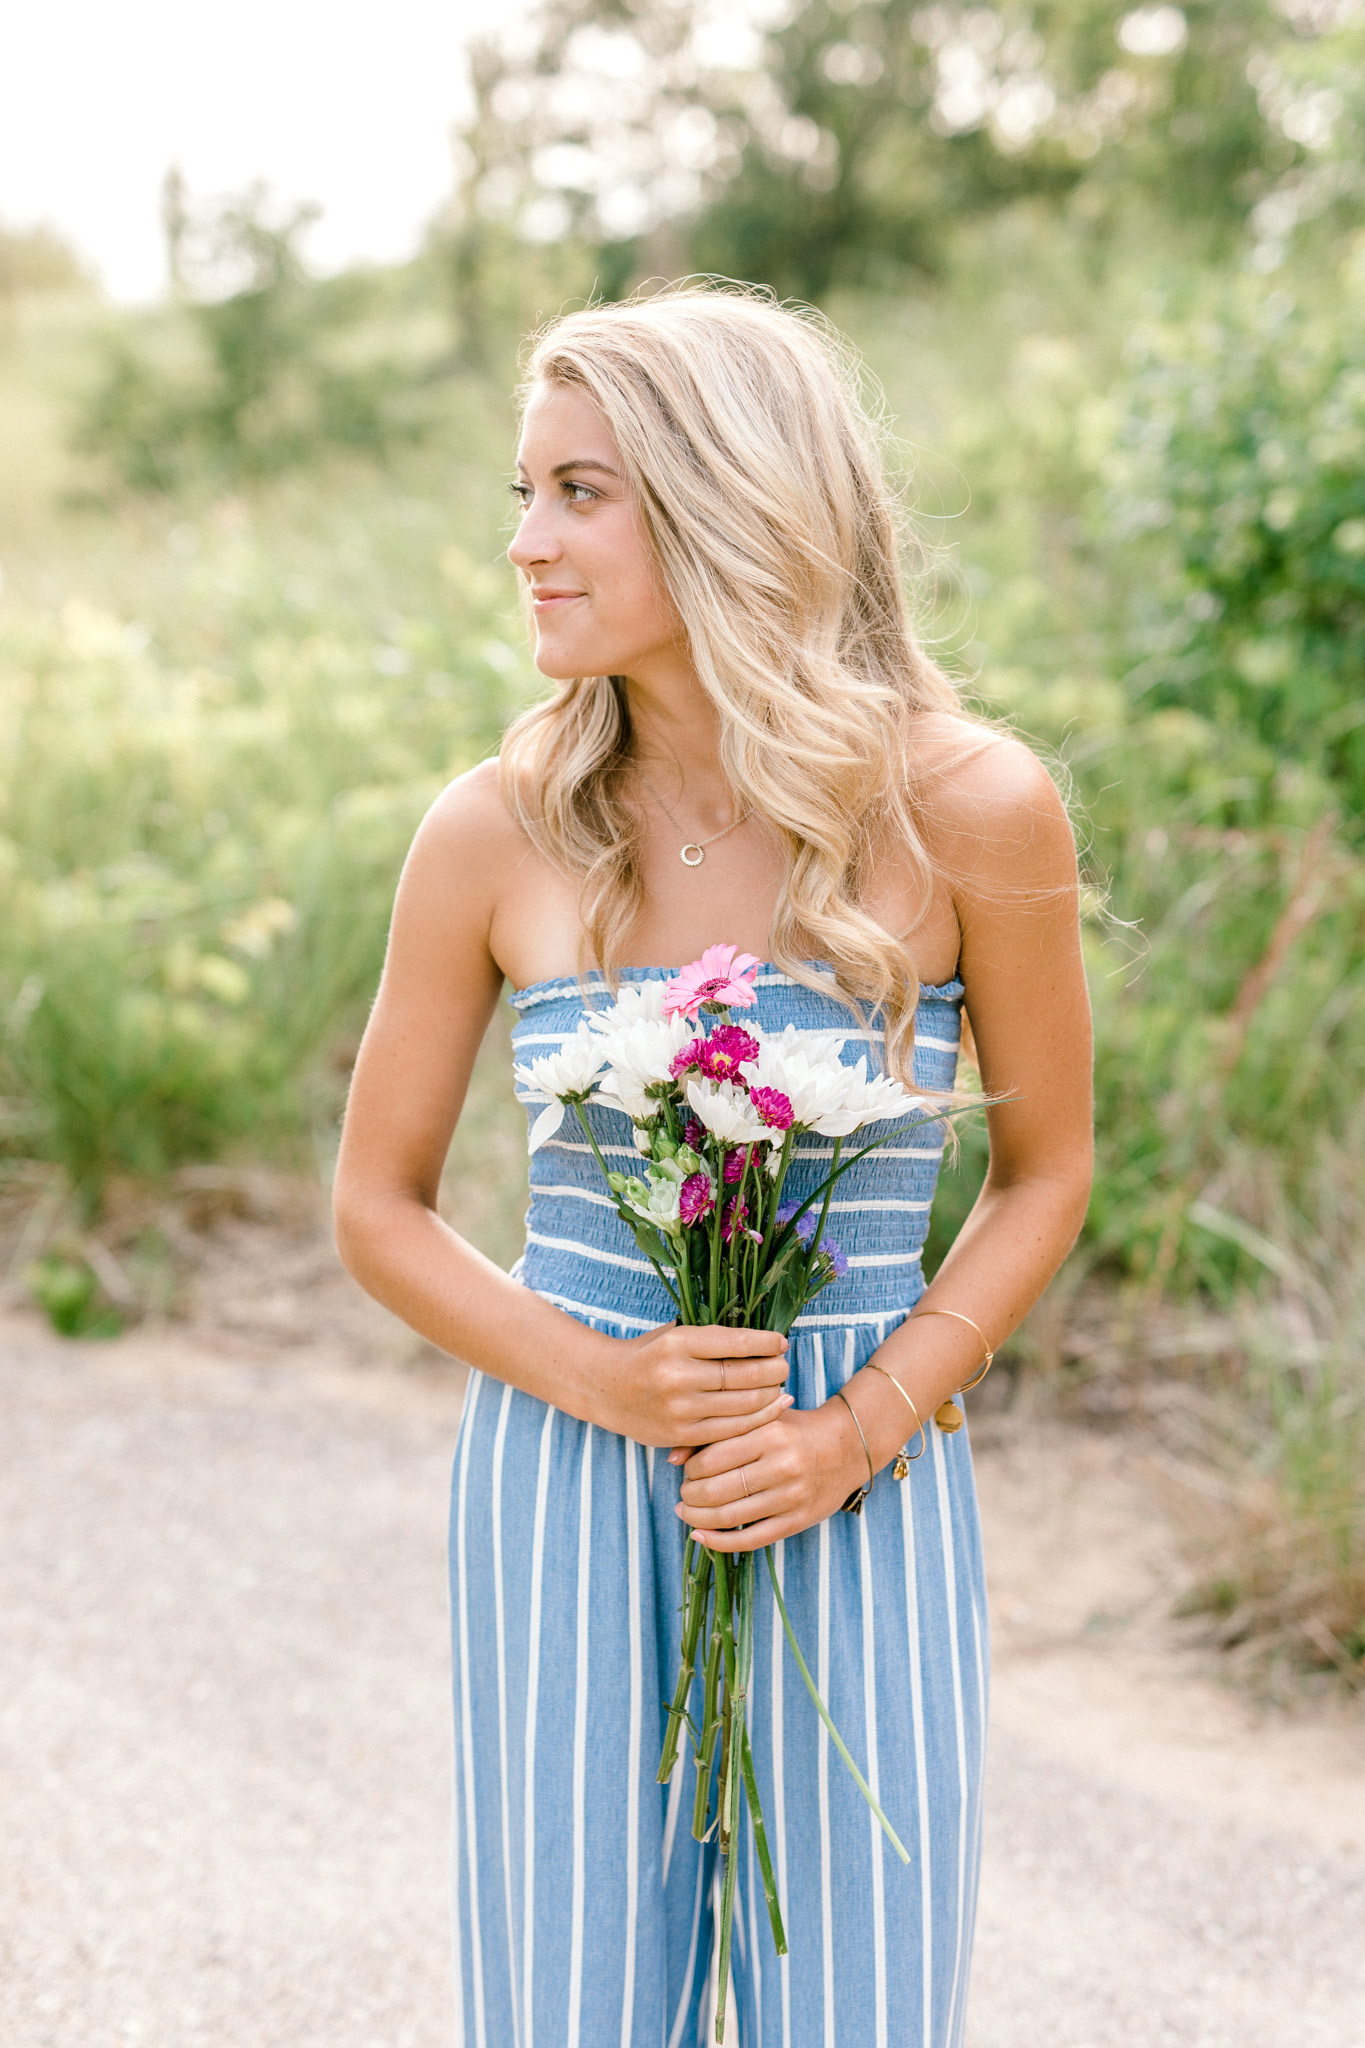 Beautiful Senior Girl Session at the Orchard and at the Beach | Senior Girl Poses | Senior Girl Wardrobe